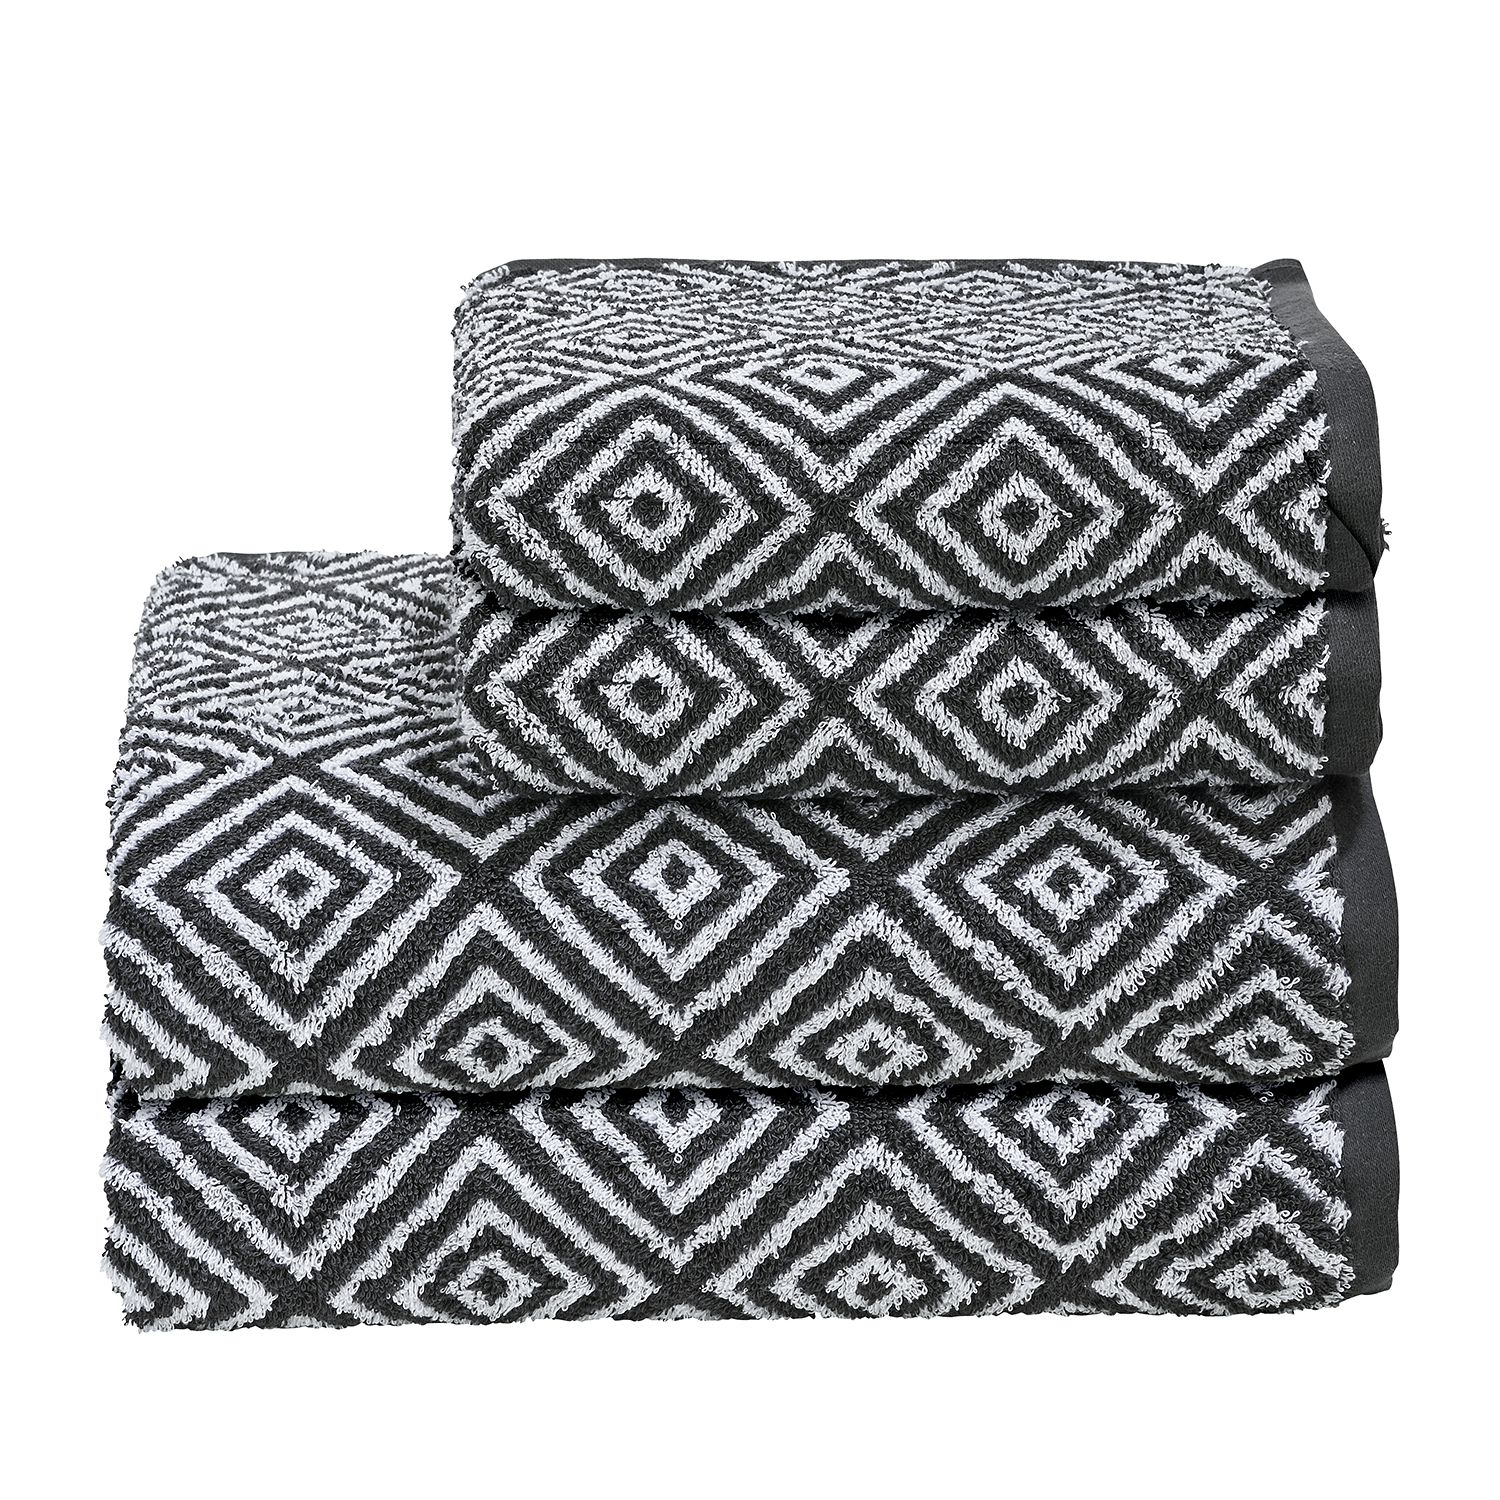 Handtuchset Day Diamond II (4-teilig) | Bad > Handtücher > Handtuch-Sets | Grau | Textil | twentyfour